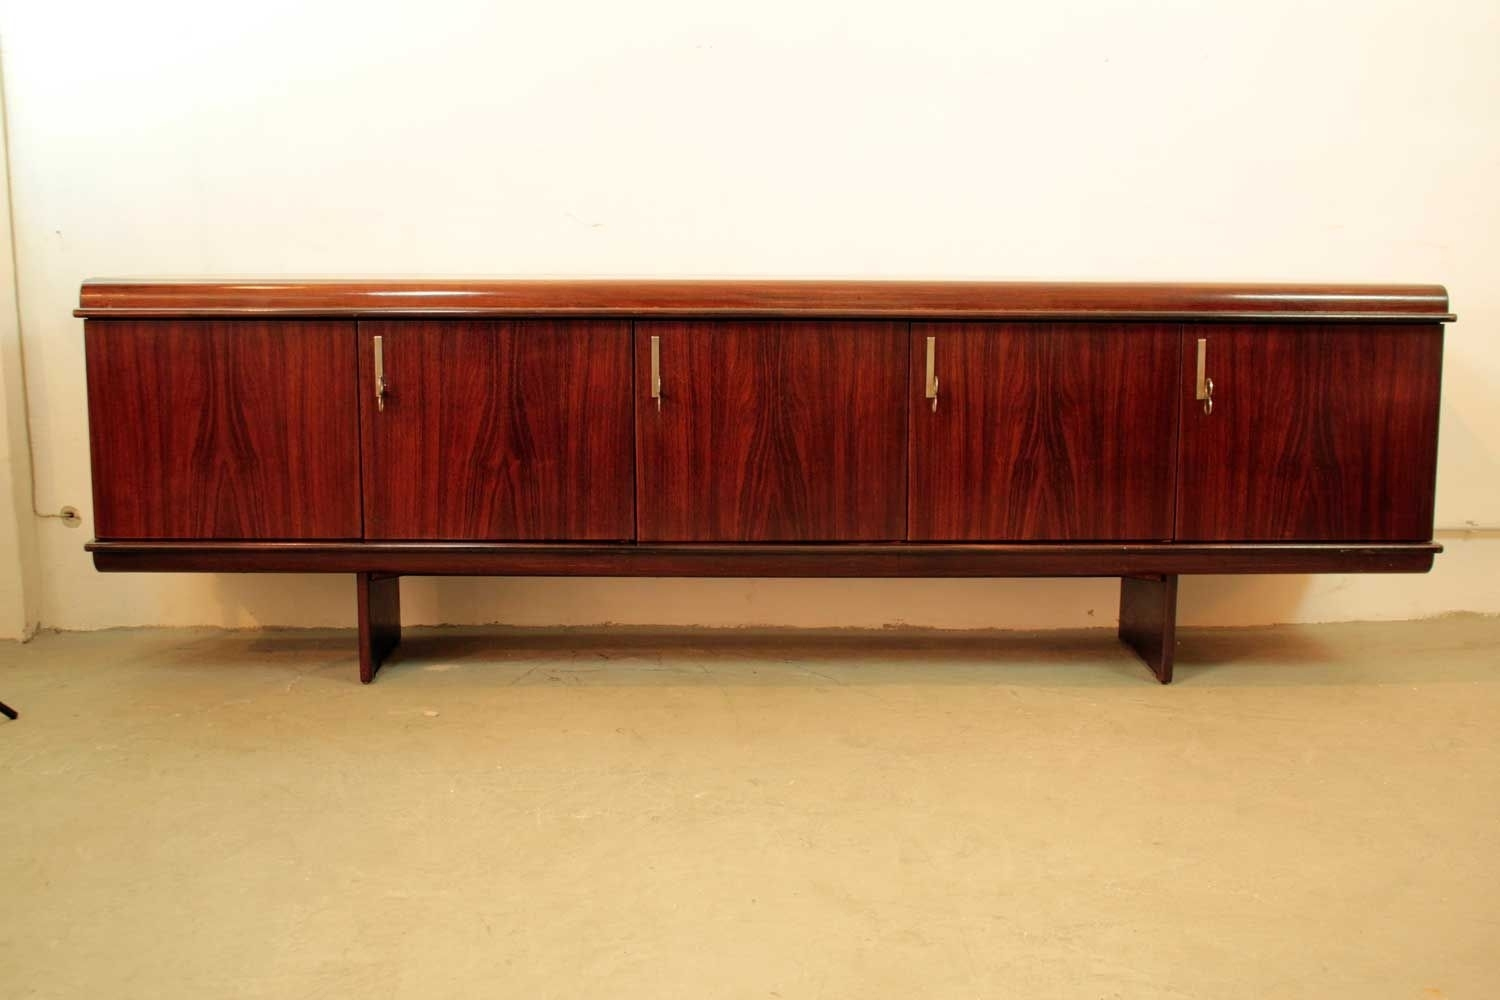 Pellicano Sideboardvittorio Introini For Sormani, 1970S For Sale in Rossi Large Sideboards (Image 16 of 30)